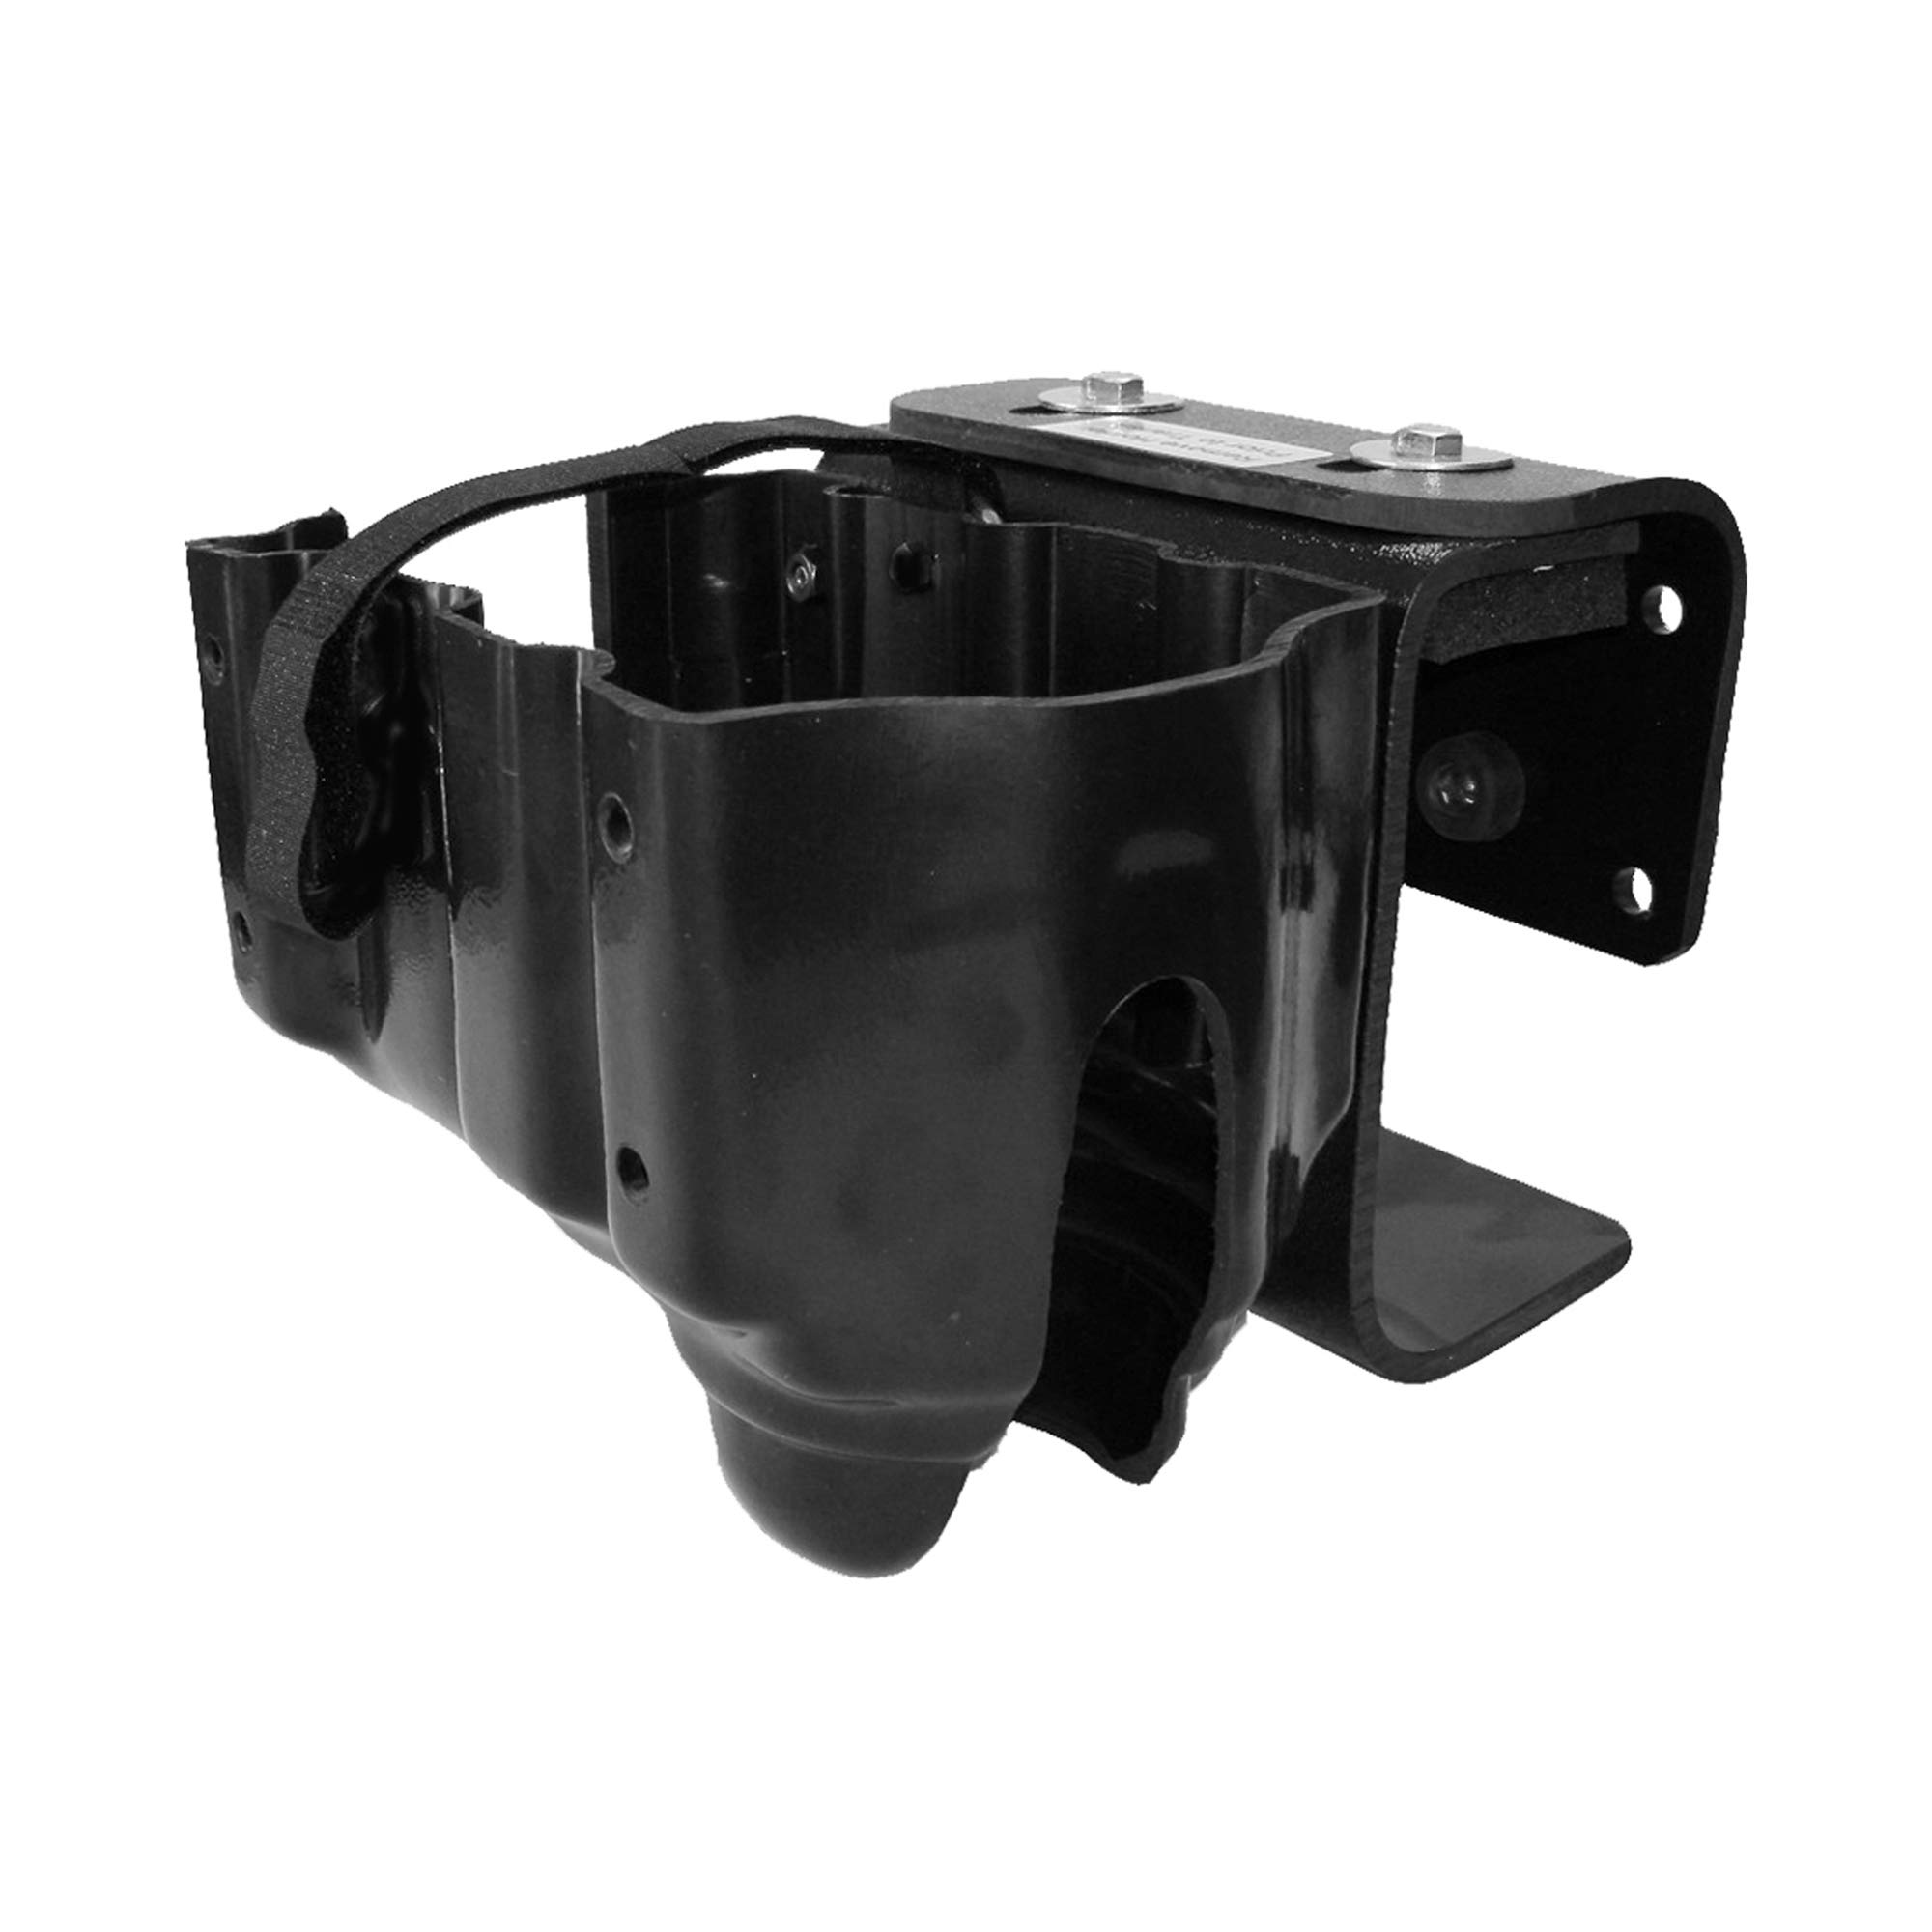 Jameson 24-12A Bucket Mount Holster for Impact Tool by Jameson